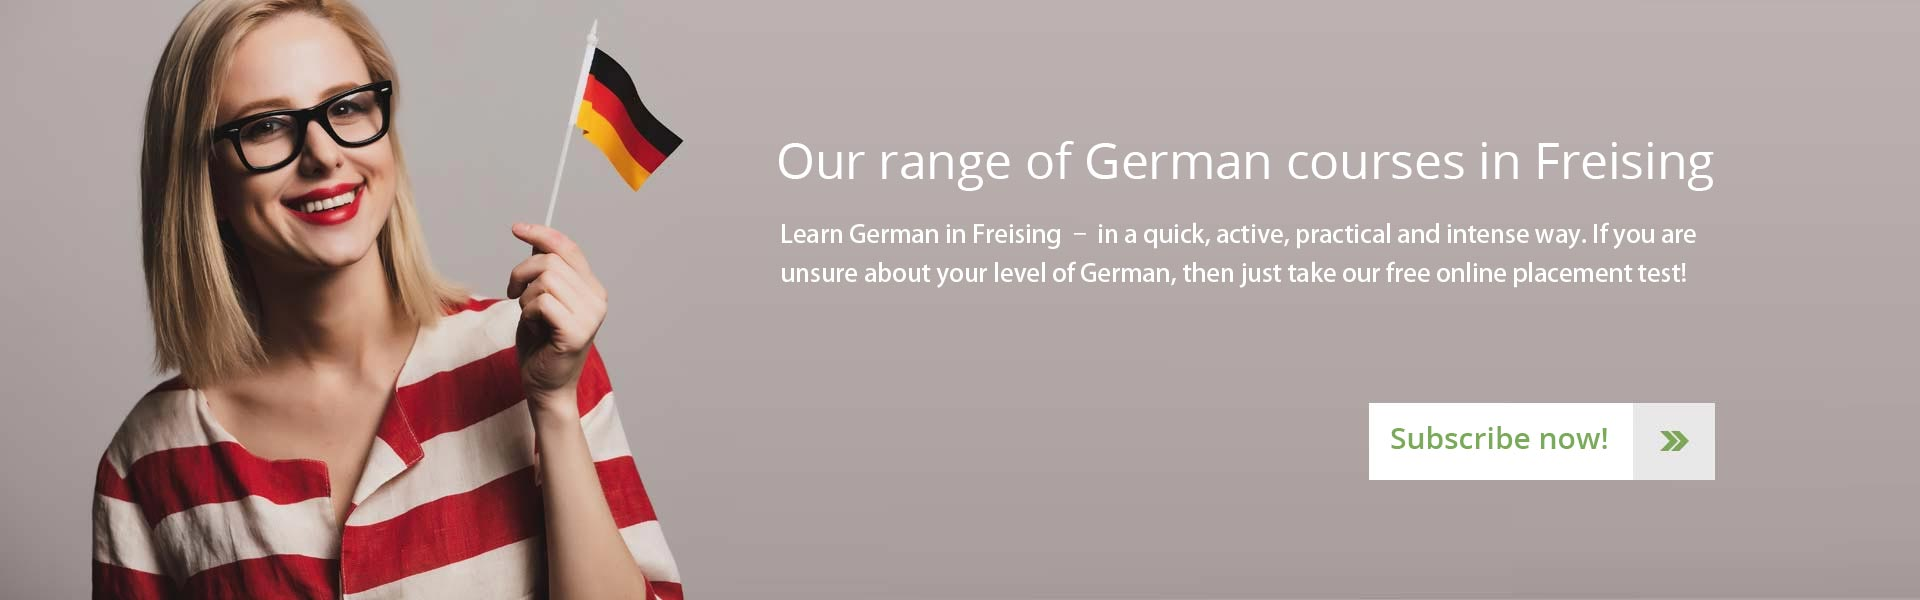 Learn German in Freising – in a quick, active, practical and intense way. If you are unsure about your level of German, then just take our free online placement test!